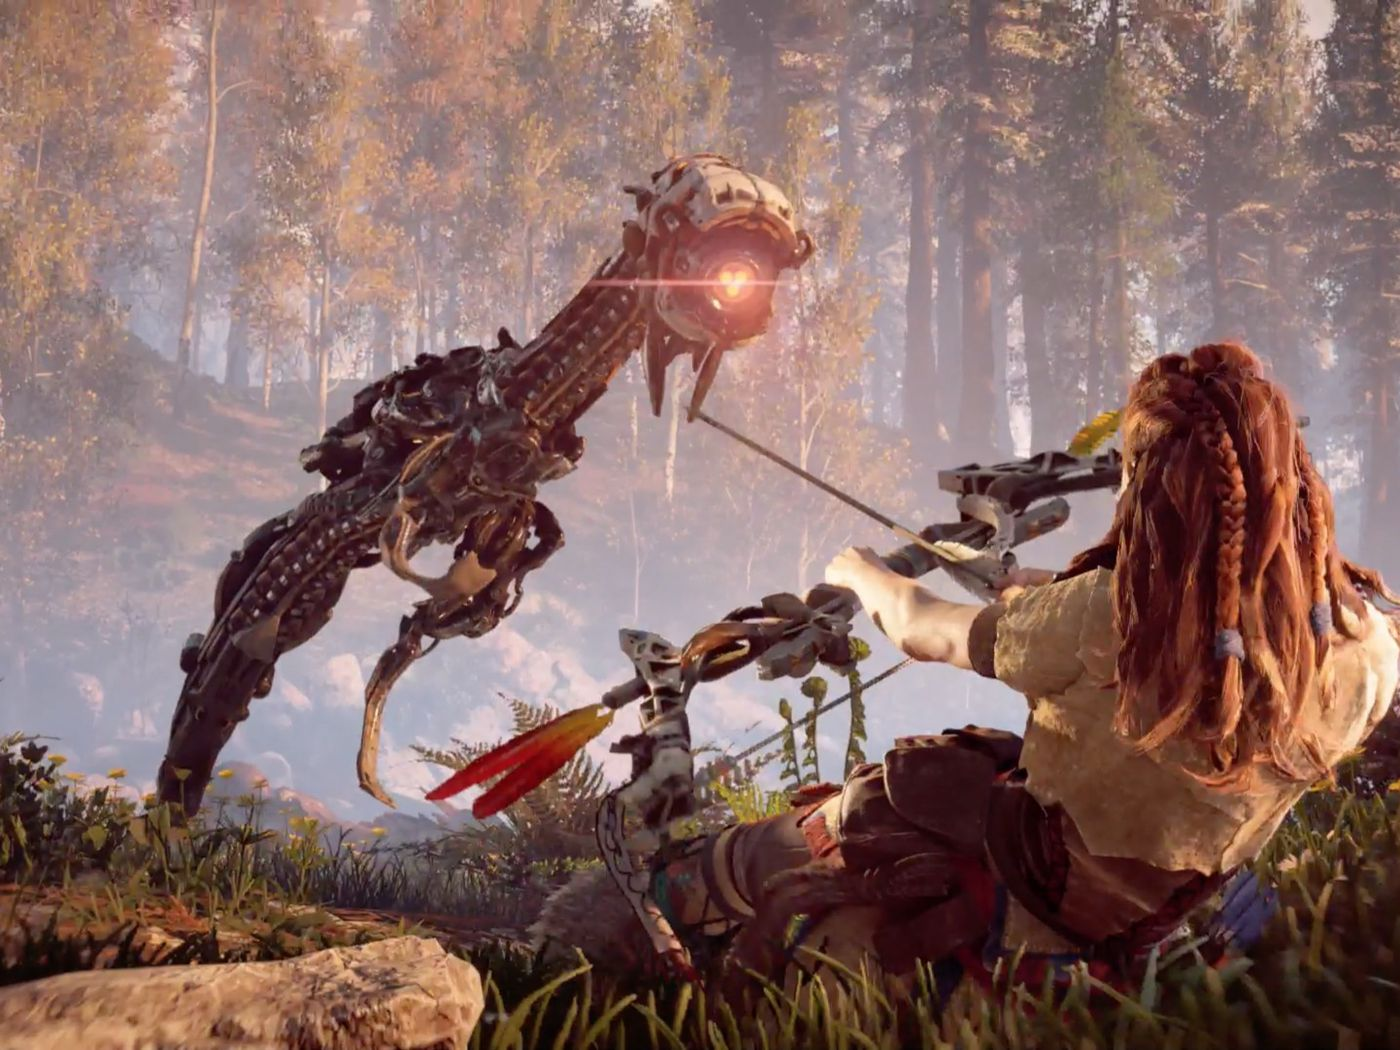 Horizon Zero Dawn how to get the best weapons and outfit - Polygon